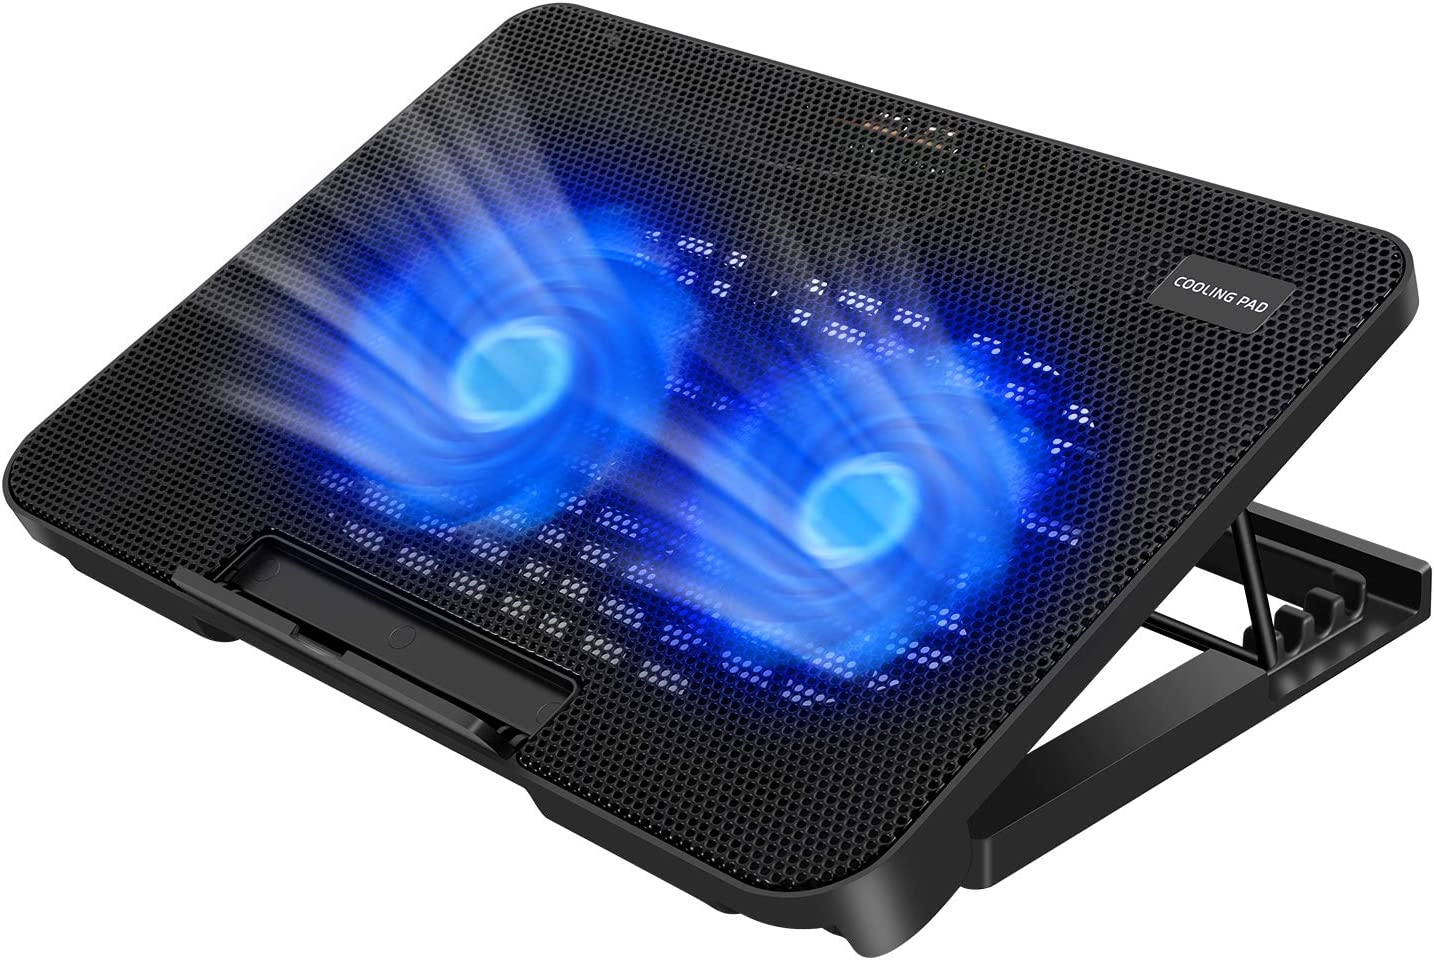 11-15.6 Inch Laptop Cooler Cooling Pad 4 Heights Adjustment Ultra Slim Portable USB Powered 2 Quiet Big Fans 800-1200RPM Auto Adjust